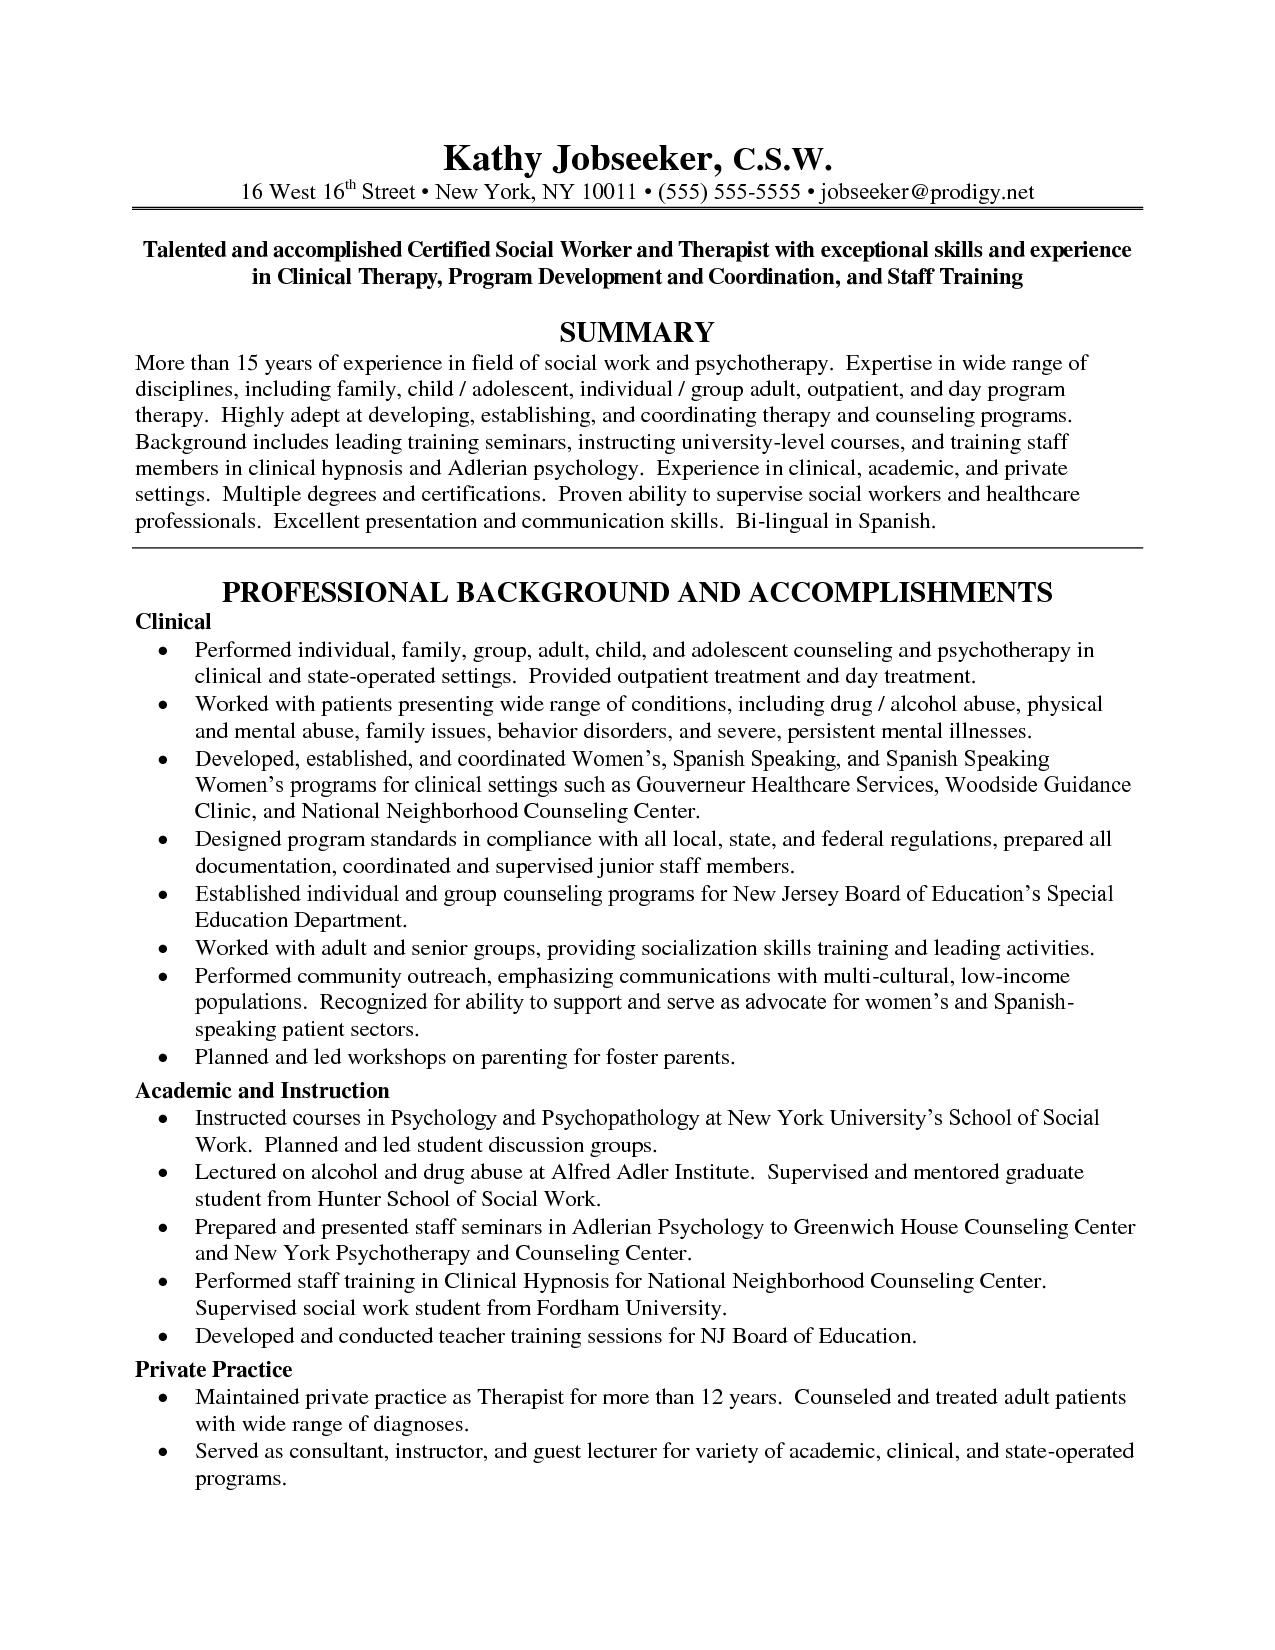 Attractive Social History Resume Examples,,social Work Resume Examples,,entry Level Social  Work